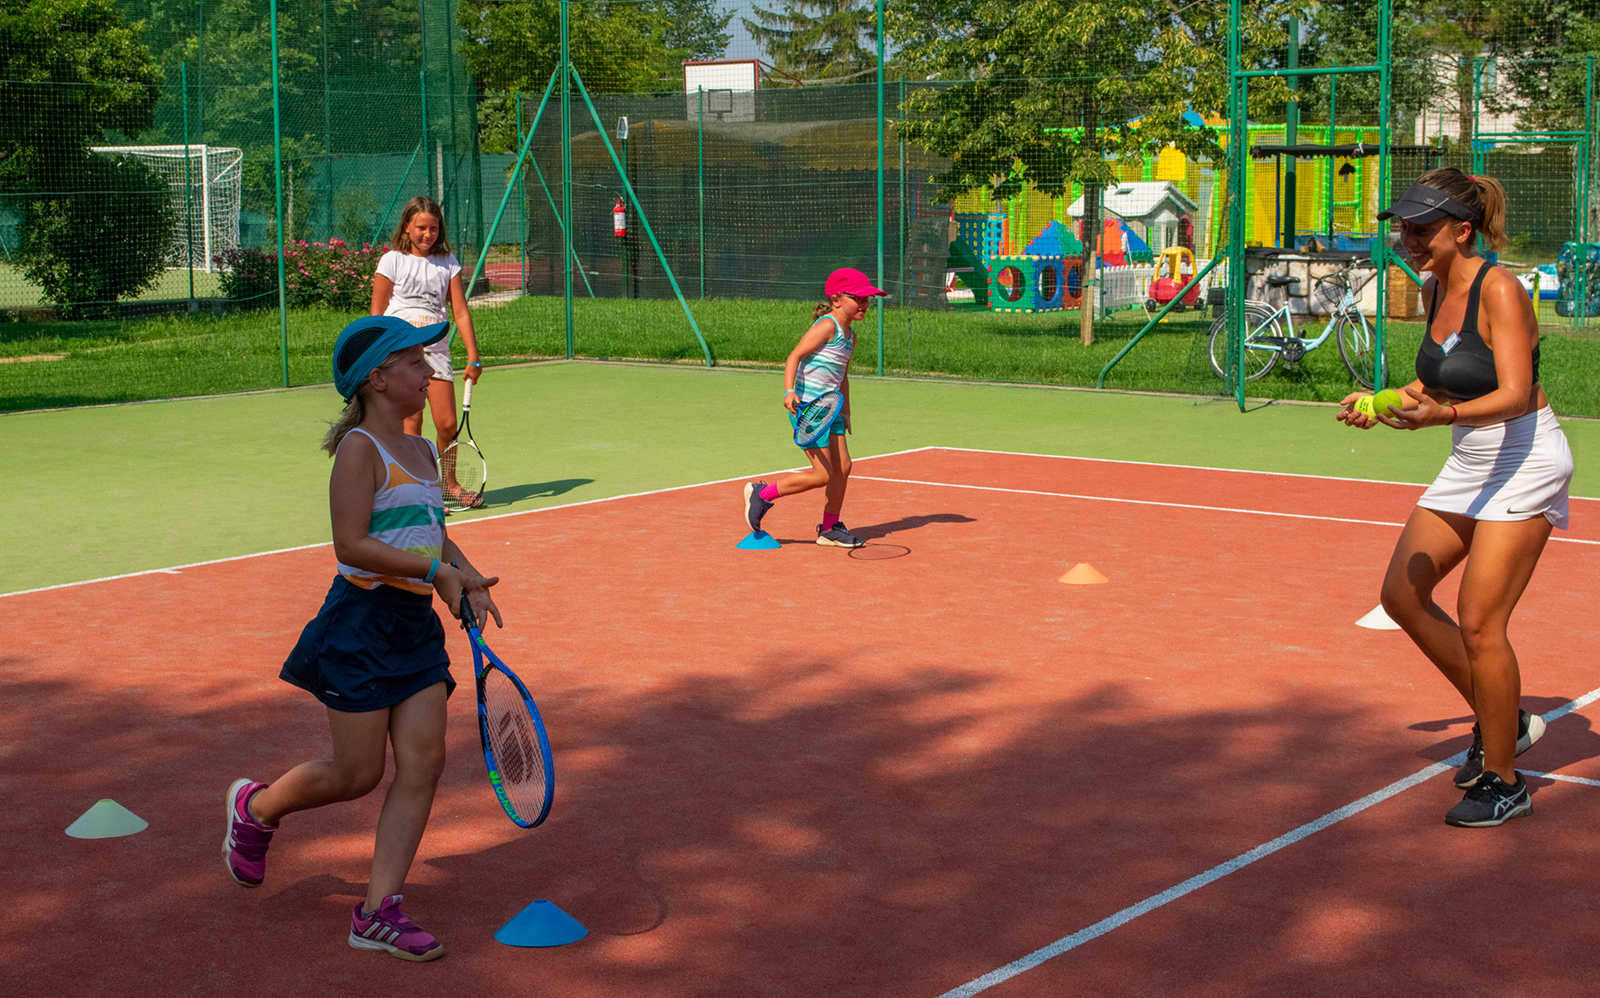 3-tennis-turniere-tournaments-Mediterraneo-Cavallino